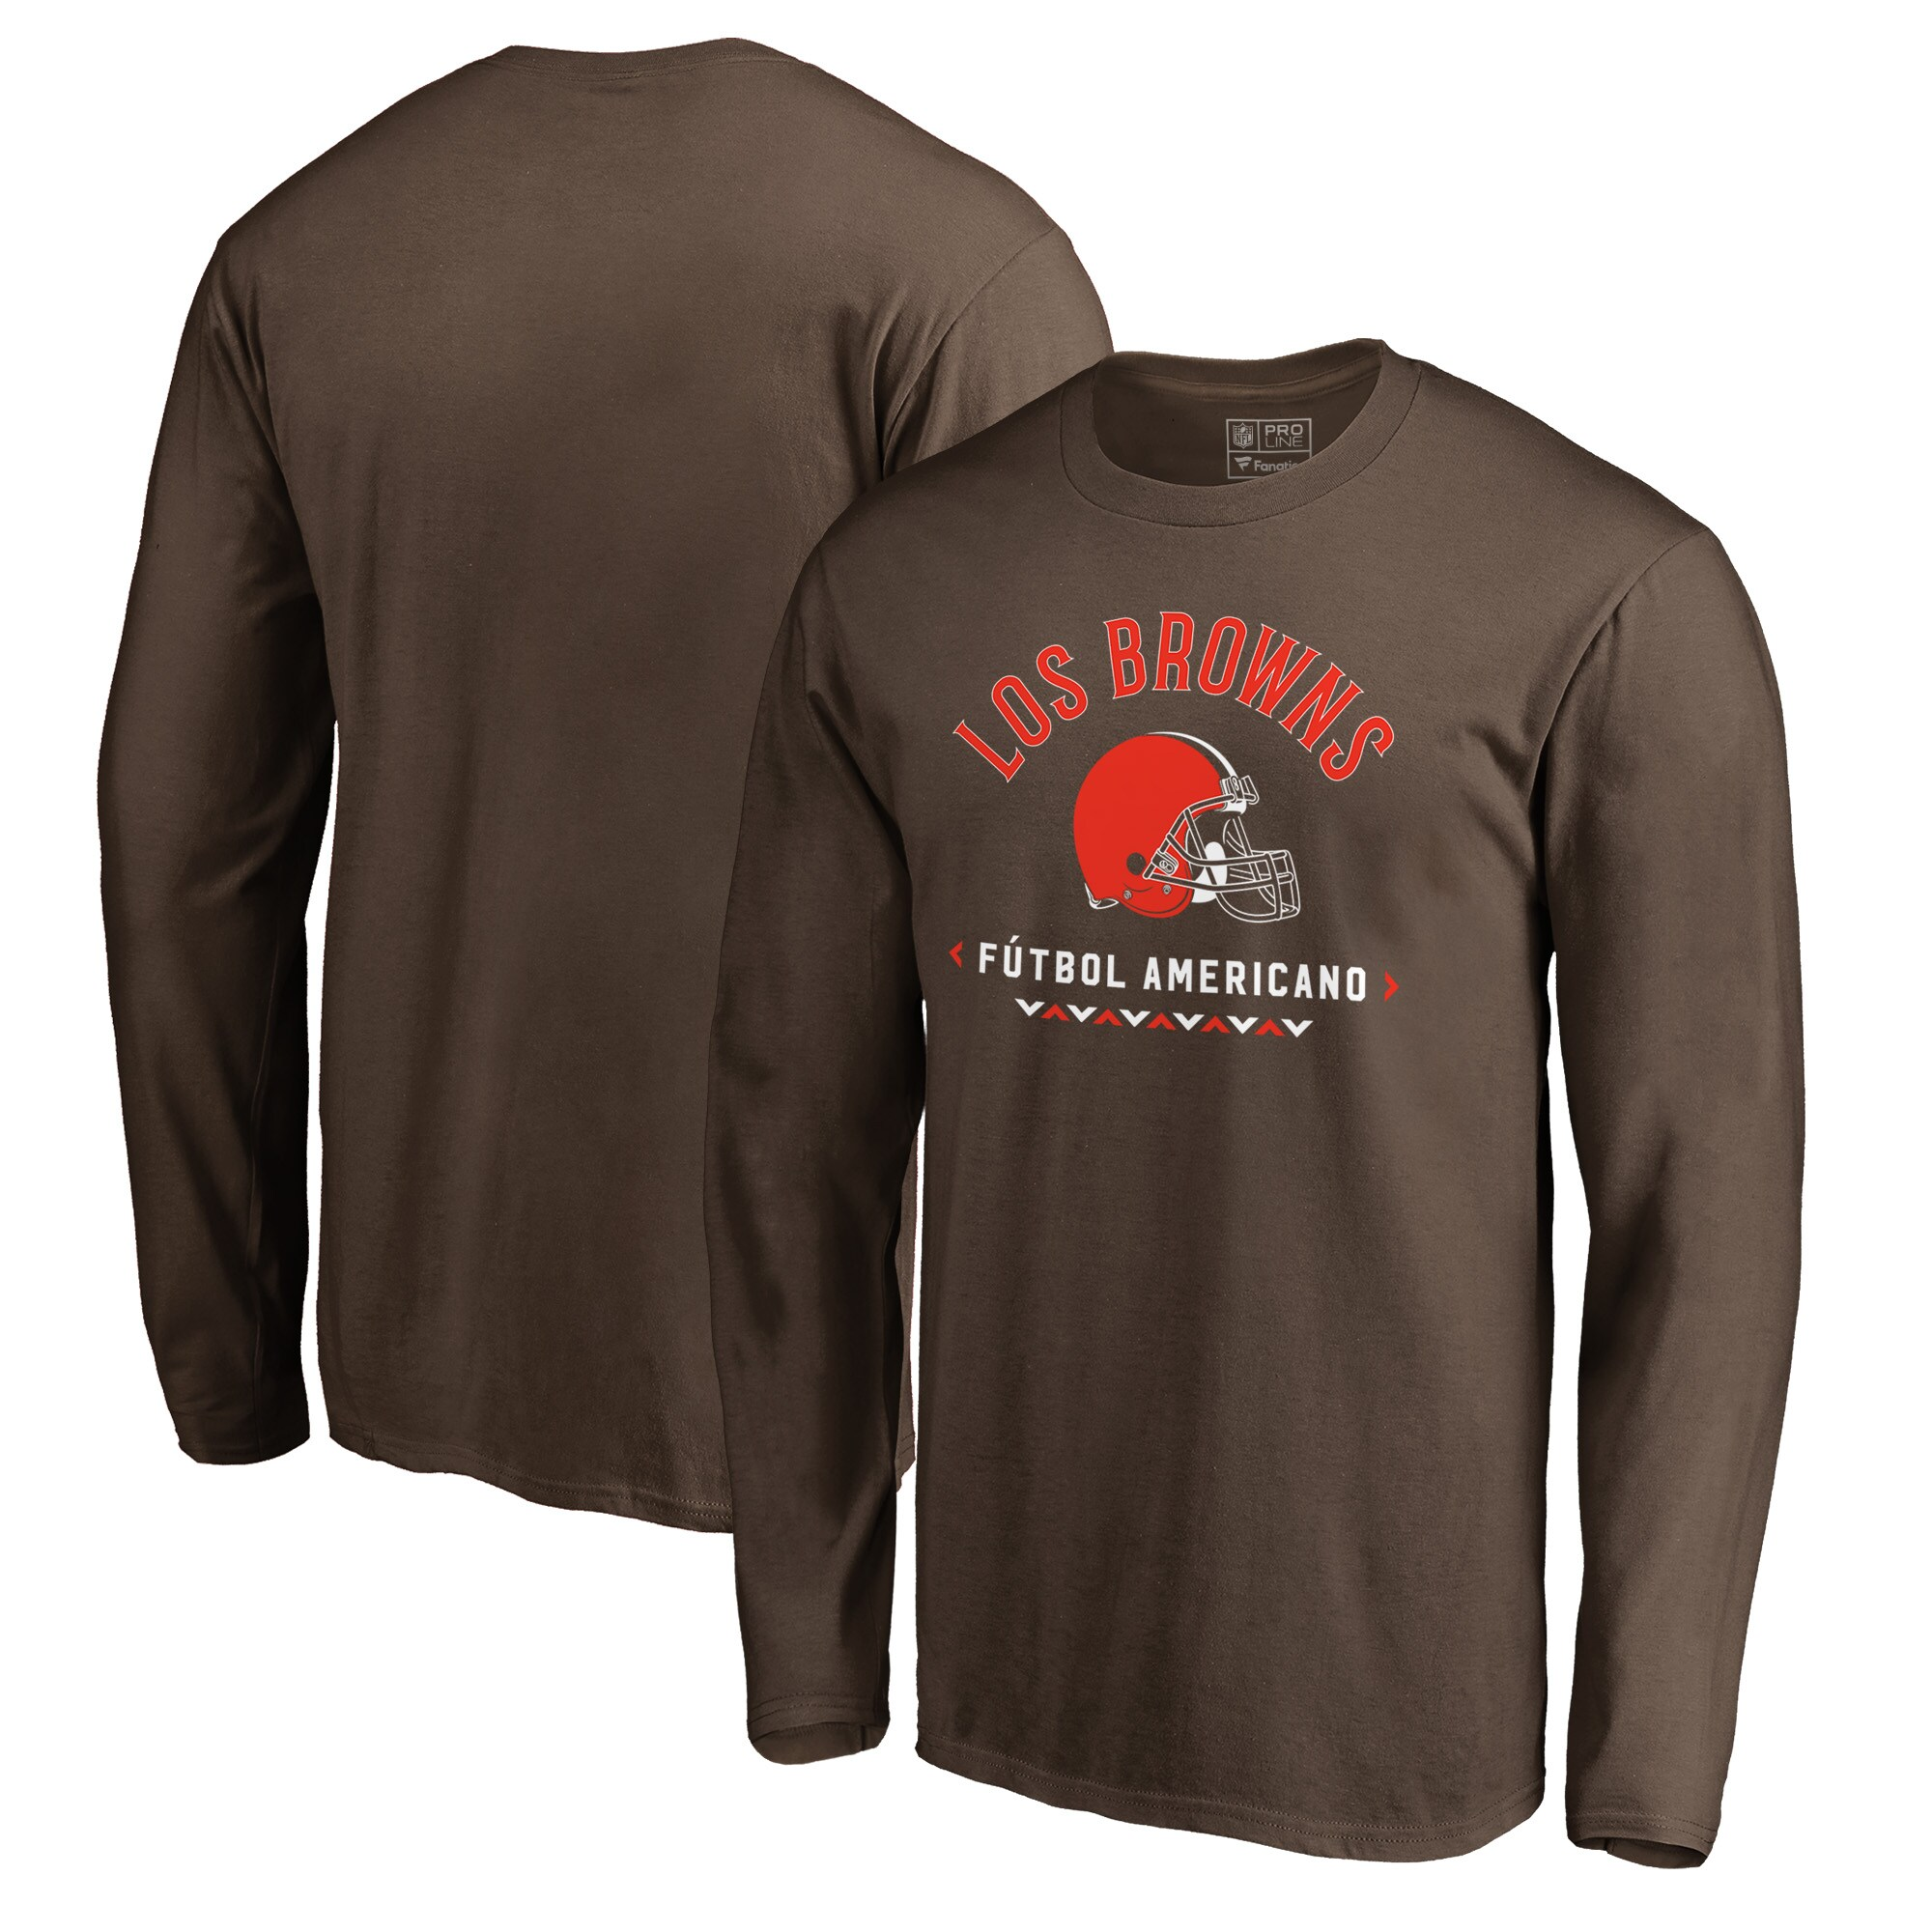 Cleveland Browns NFL Pro Line by Fanatics Branded Futbol Americano Long Sleeve T-Shirt - Brown